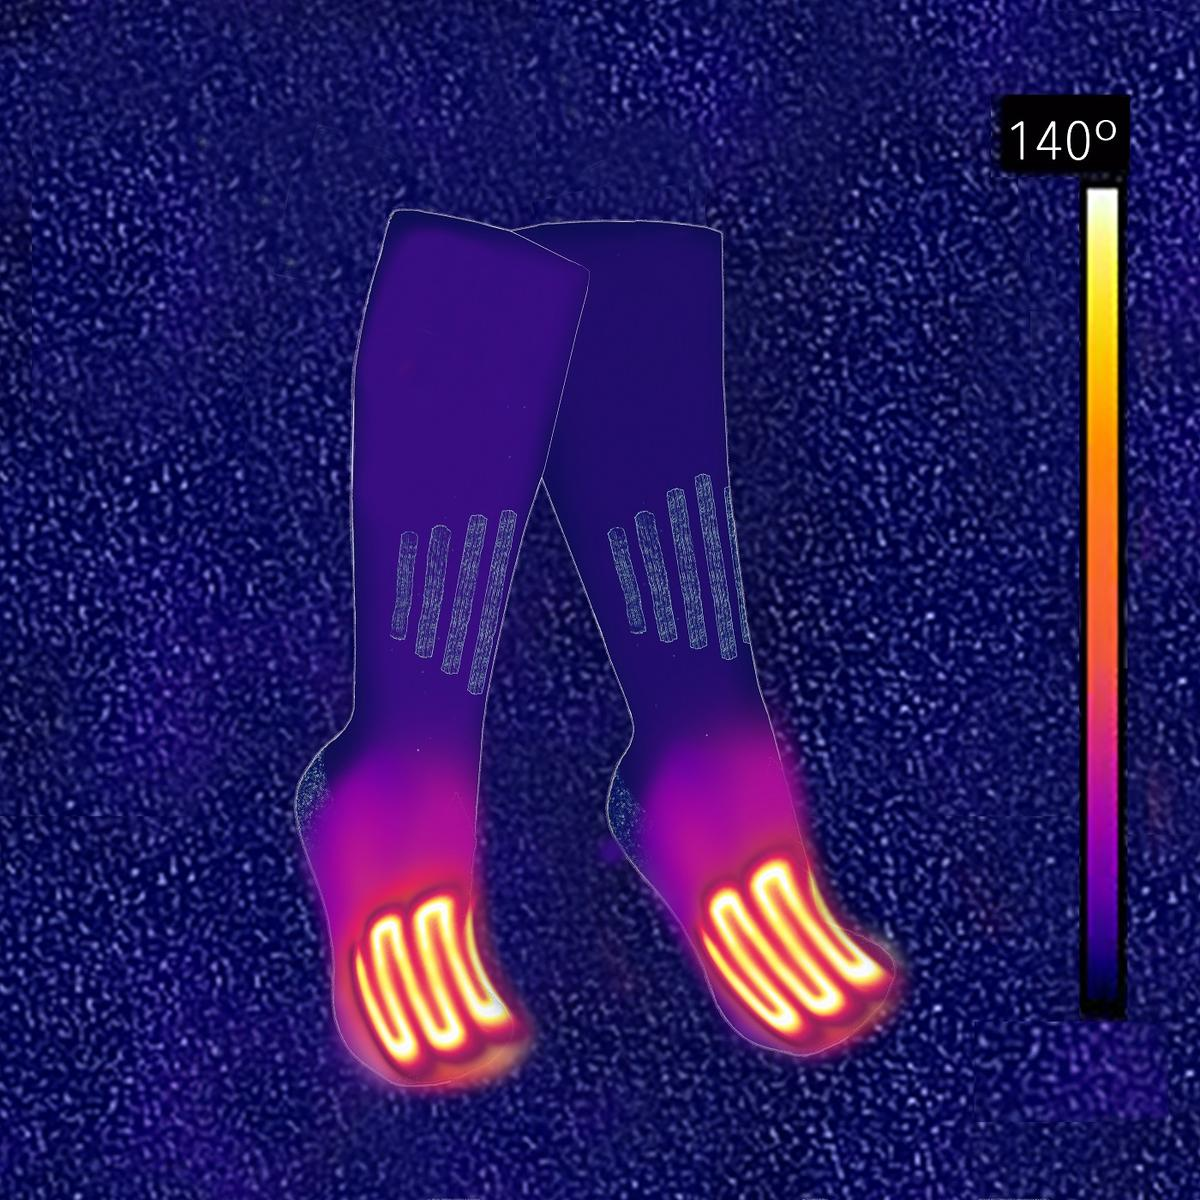 ActionHeat 3 7V Rechargeable Battery Heated Socks - Cotton